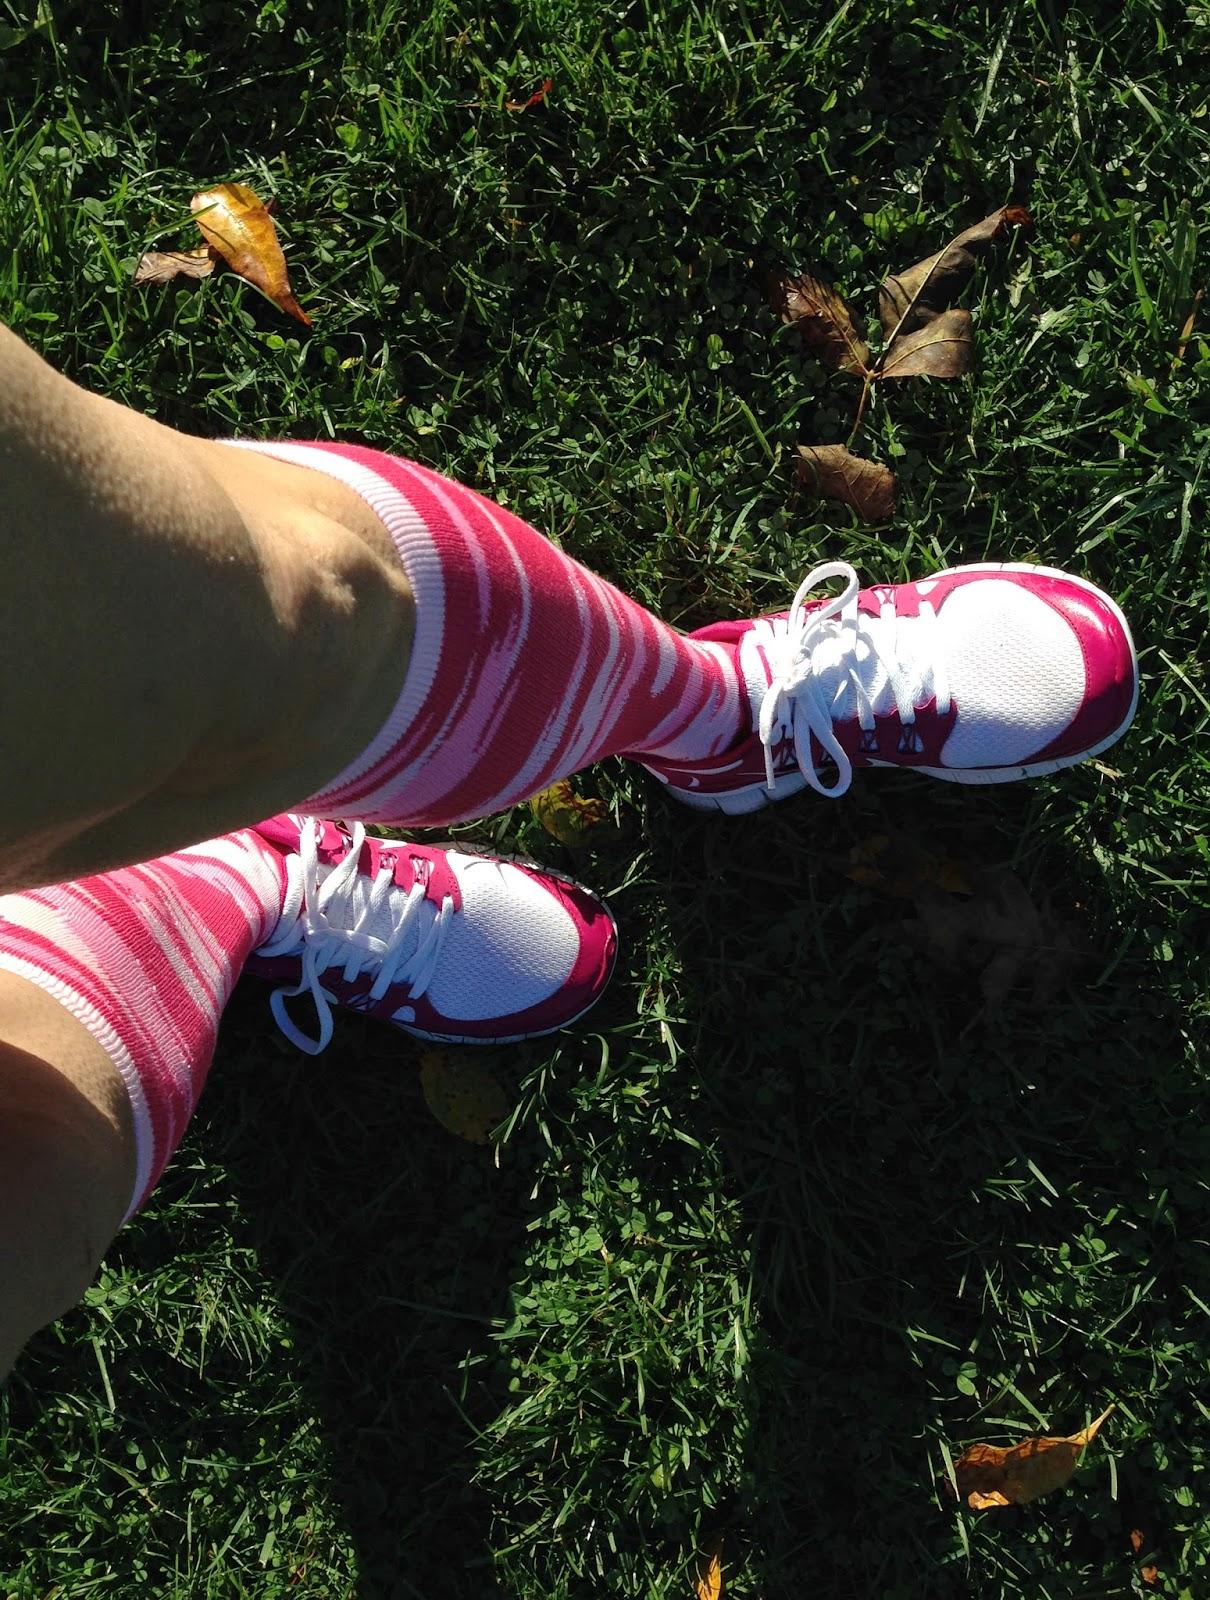 photo of my pink socks